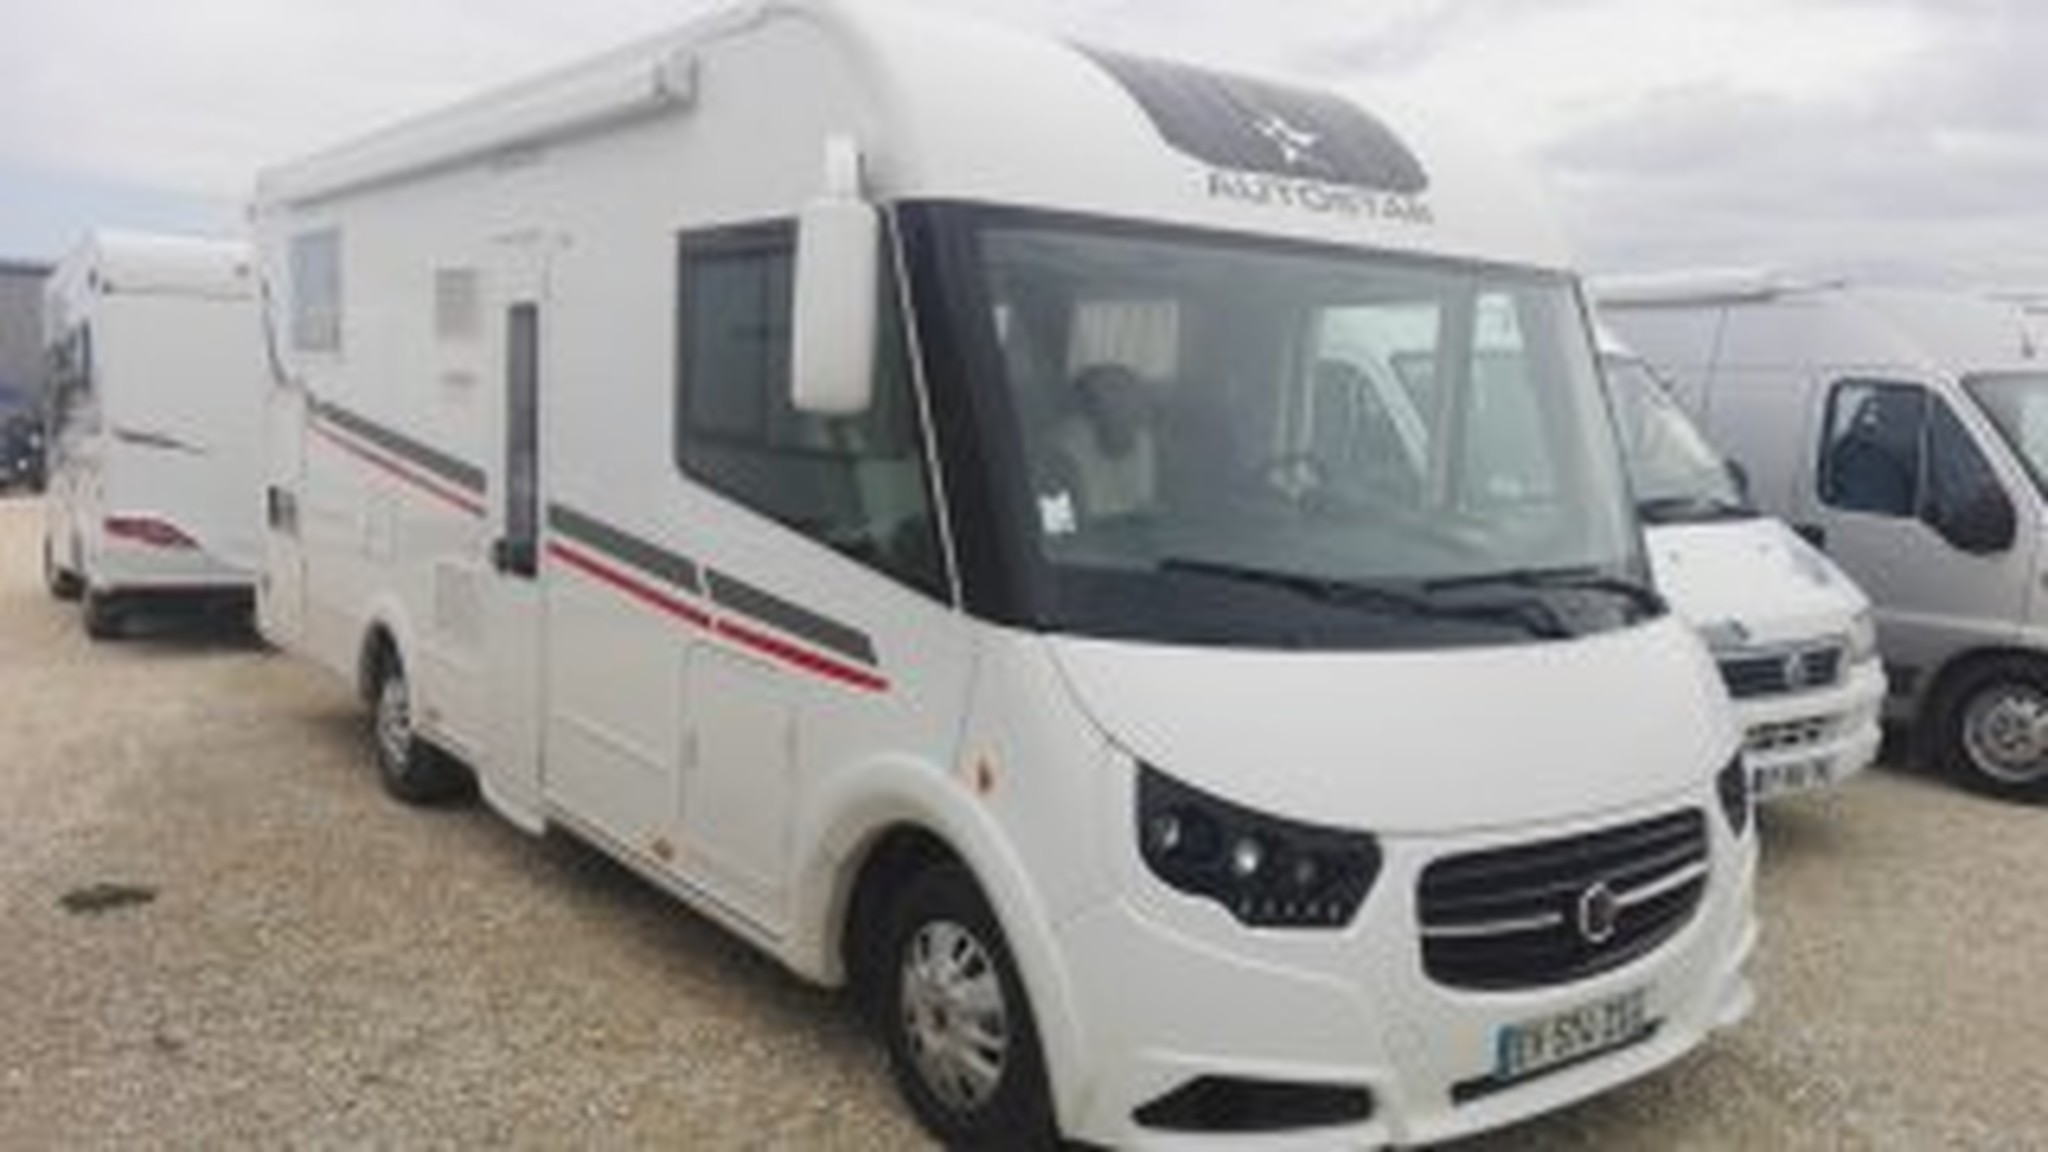 Camping-car AUTOSTAR I 720 Lc Elite Passion